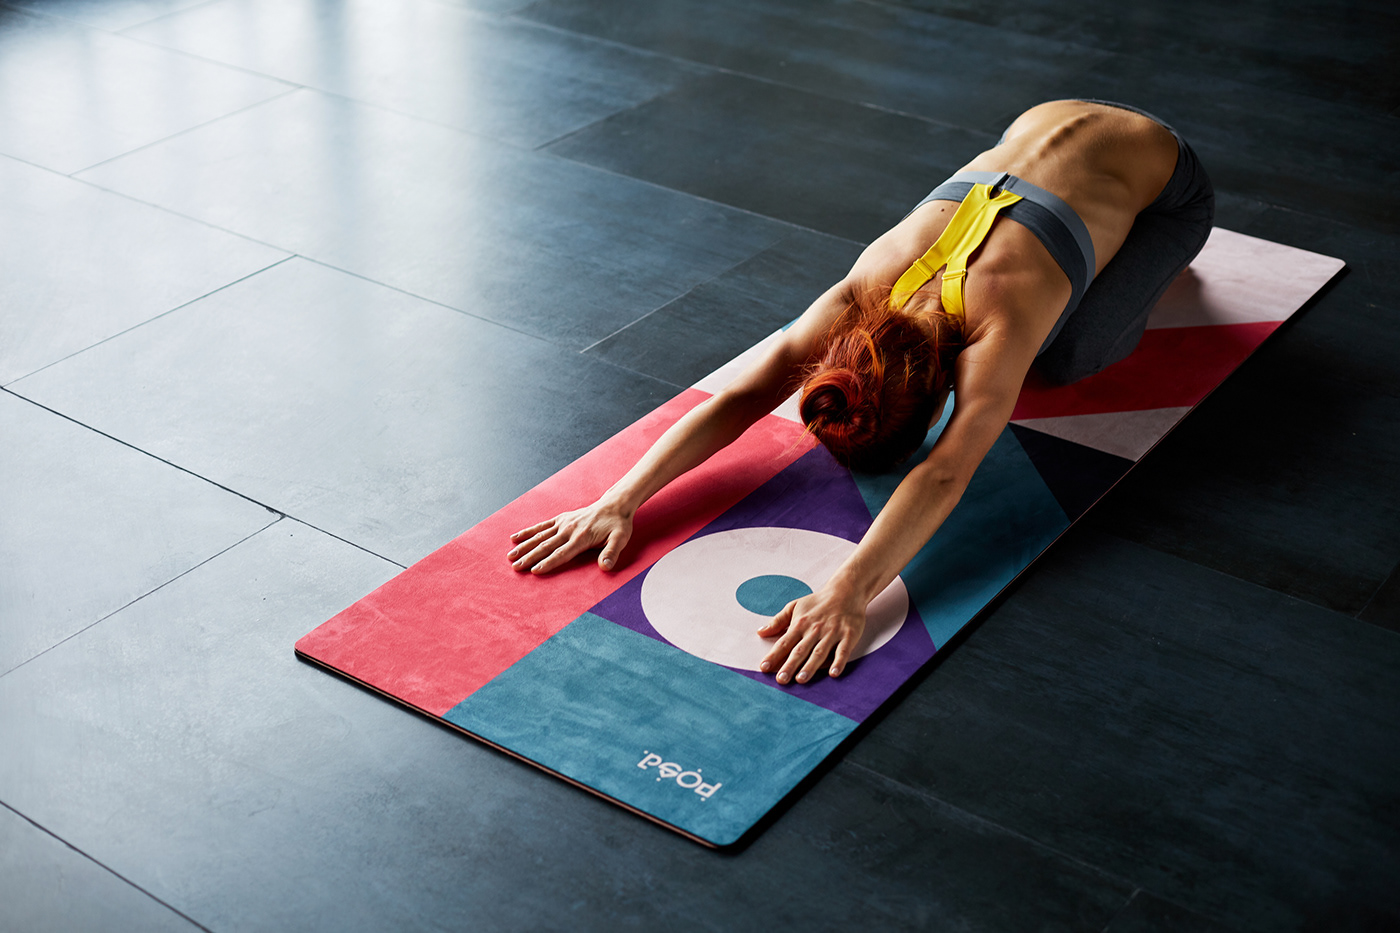 identity Yoga fitness yogamat landing page package Packaging